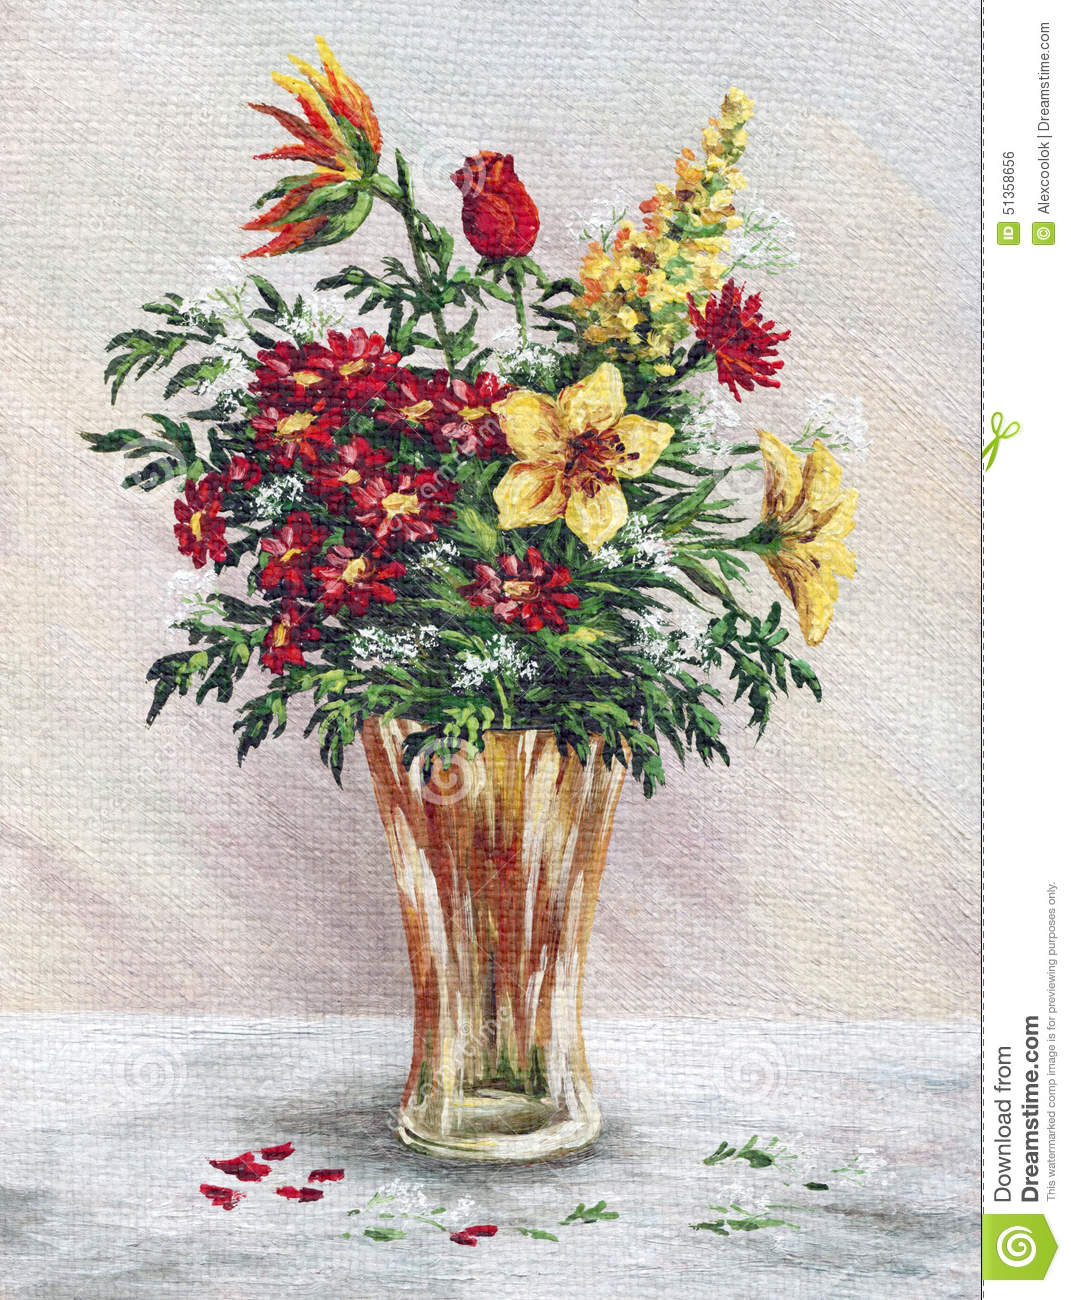 Painting flowers in a glass vase stock illustration illustration painting flowers in a glass vase reviewsmspy